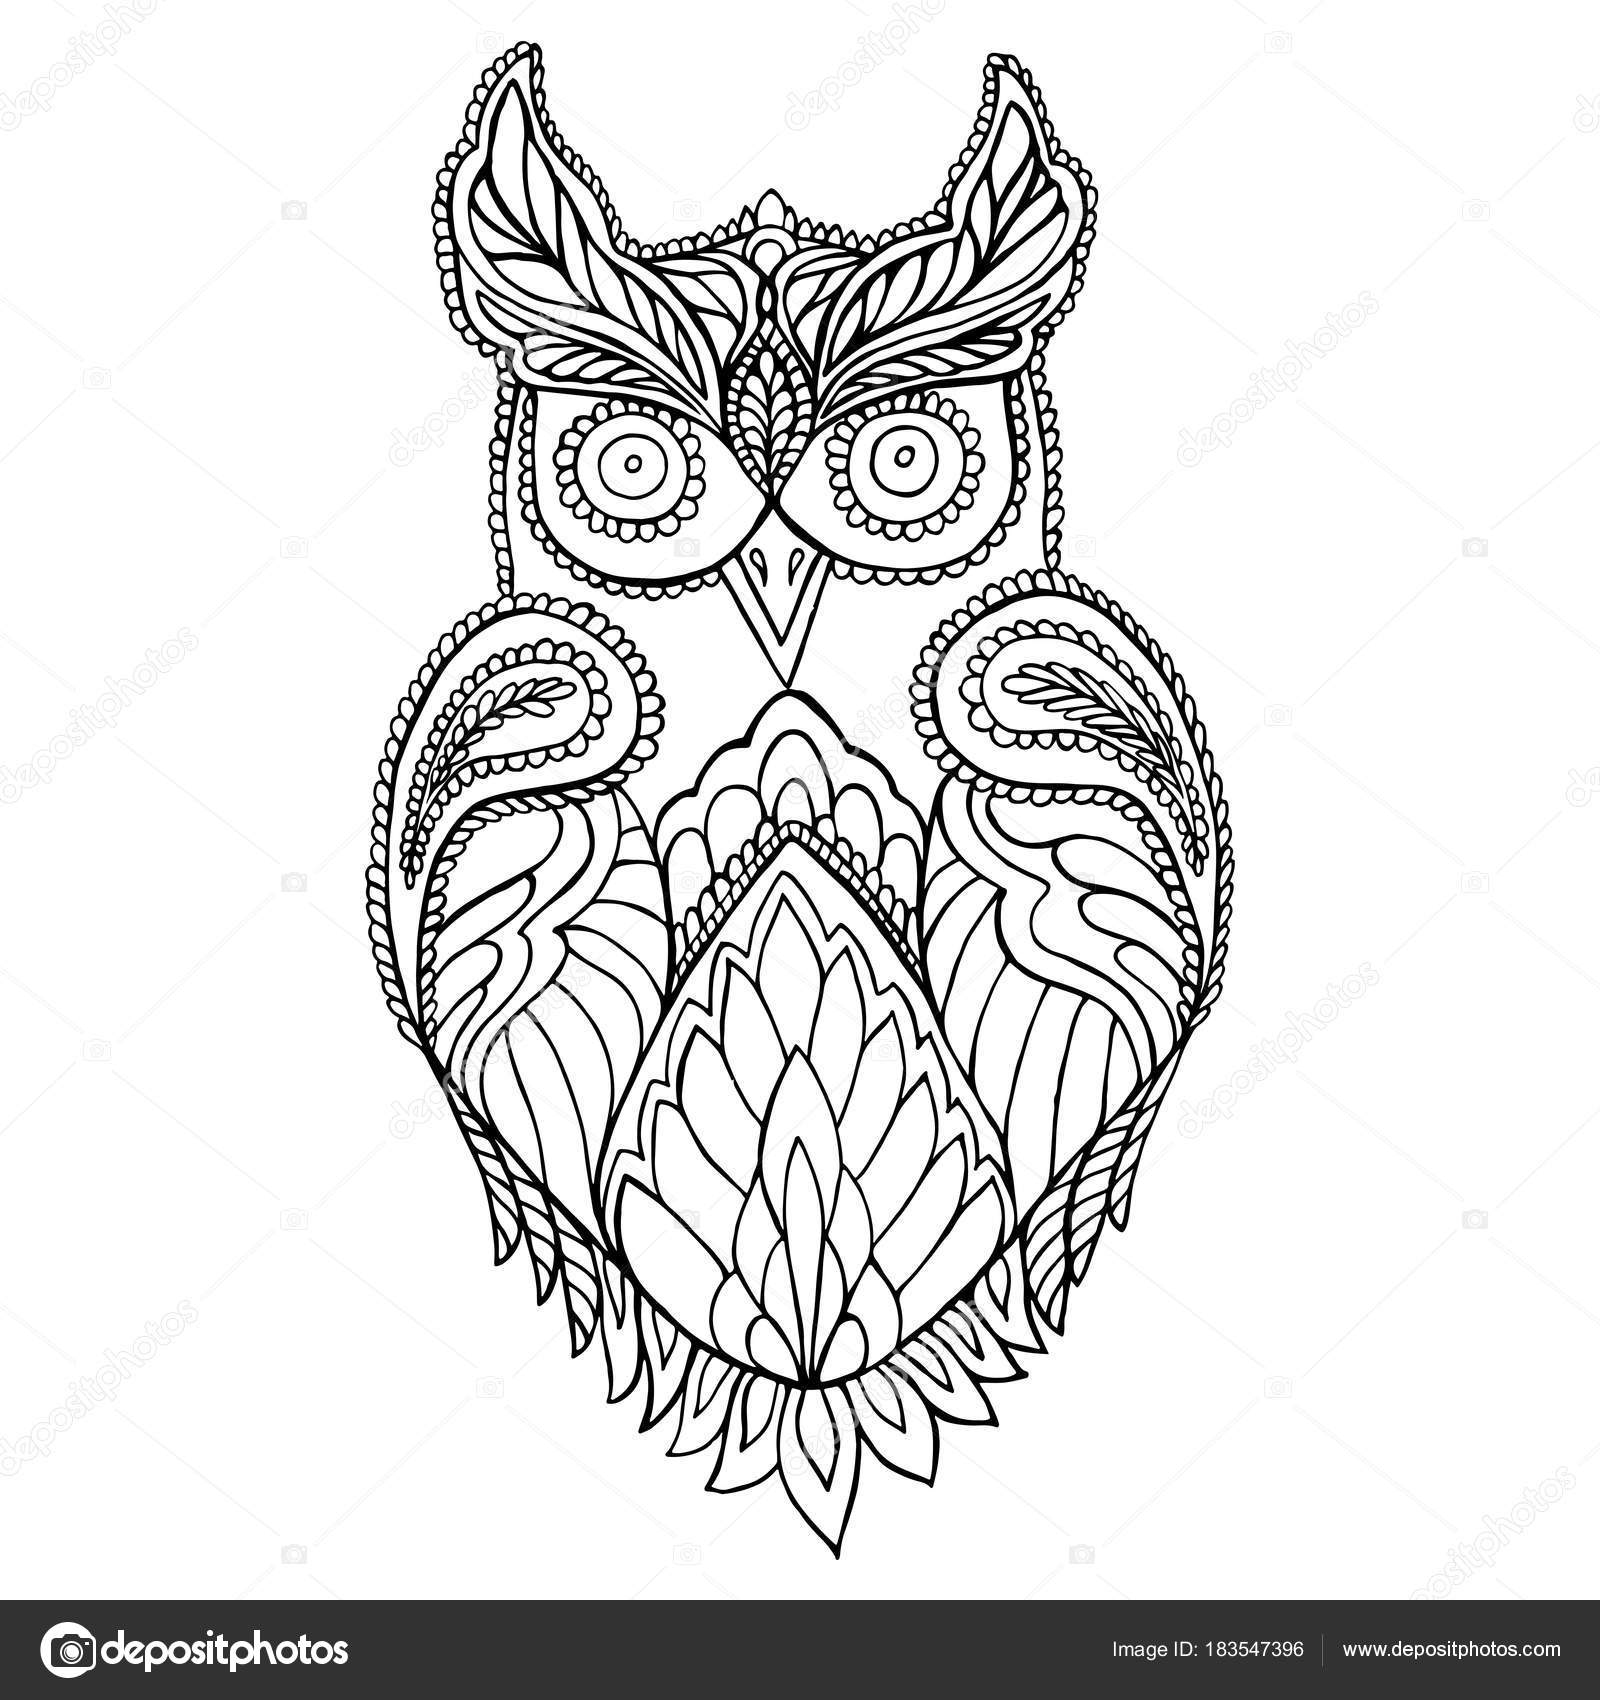 Owl coloring page for children and adults. — Stock Vector ...